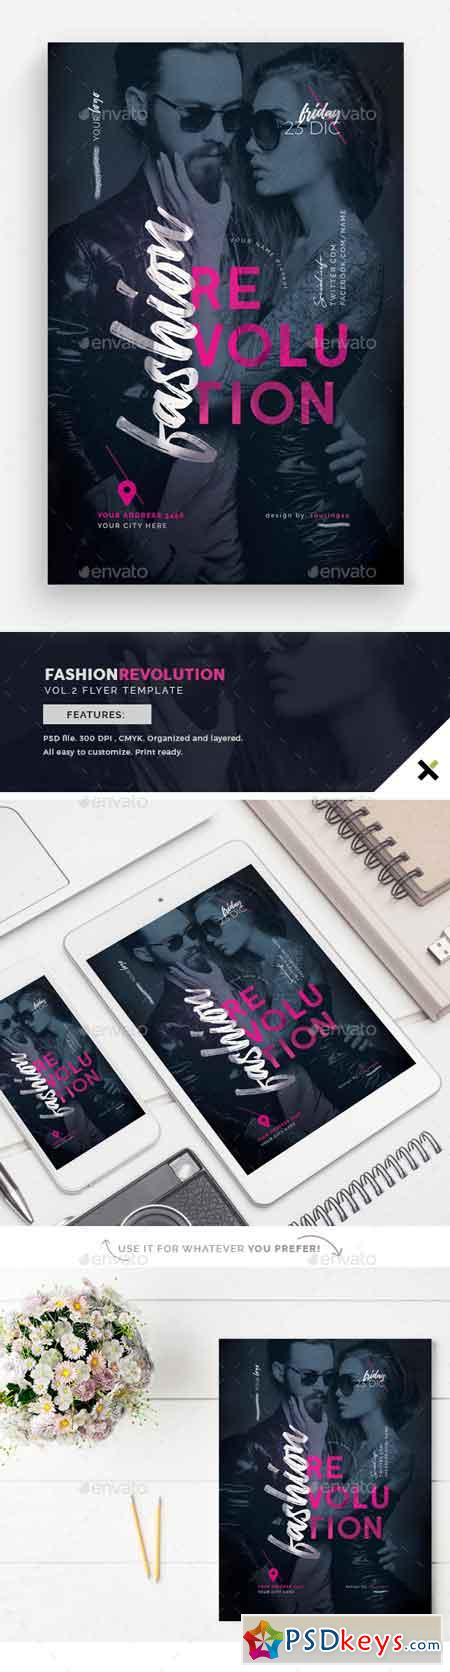 Fashion Revolution Vol.2 Flyer Template 22850221